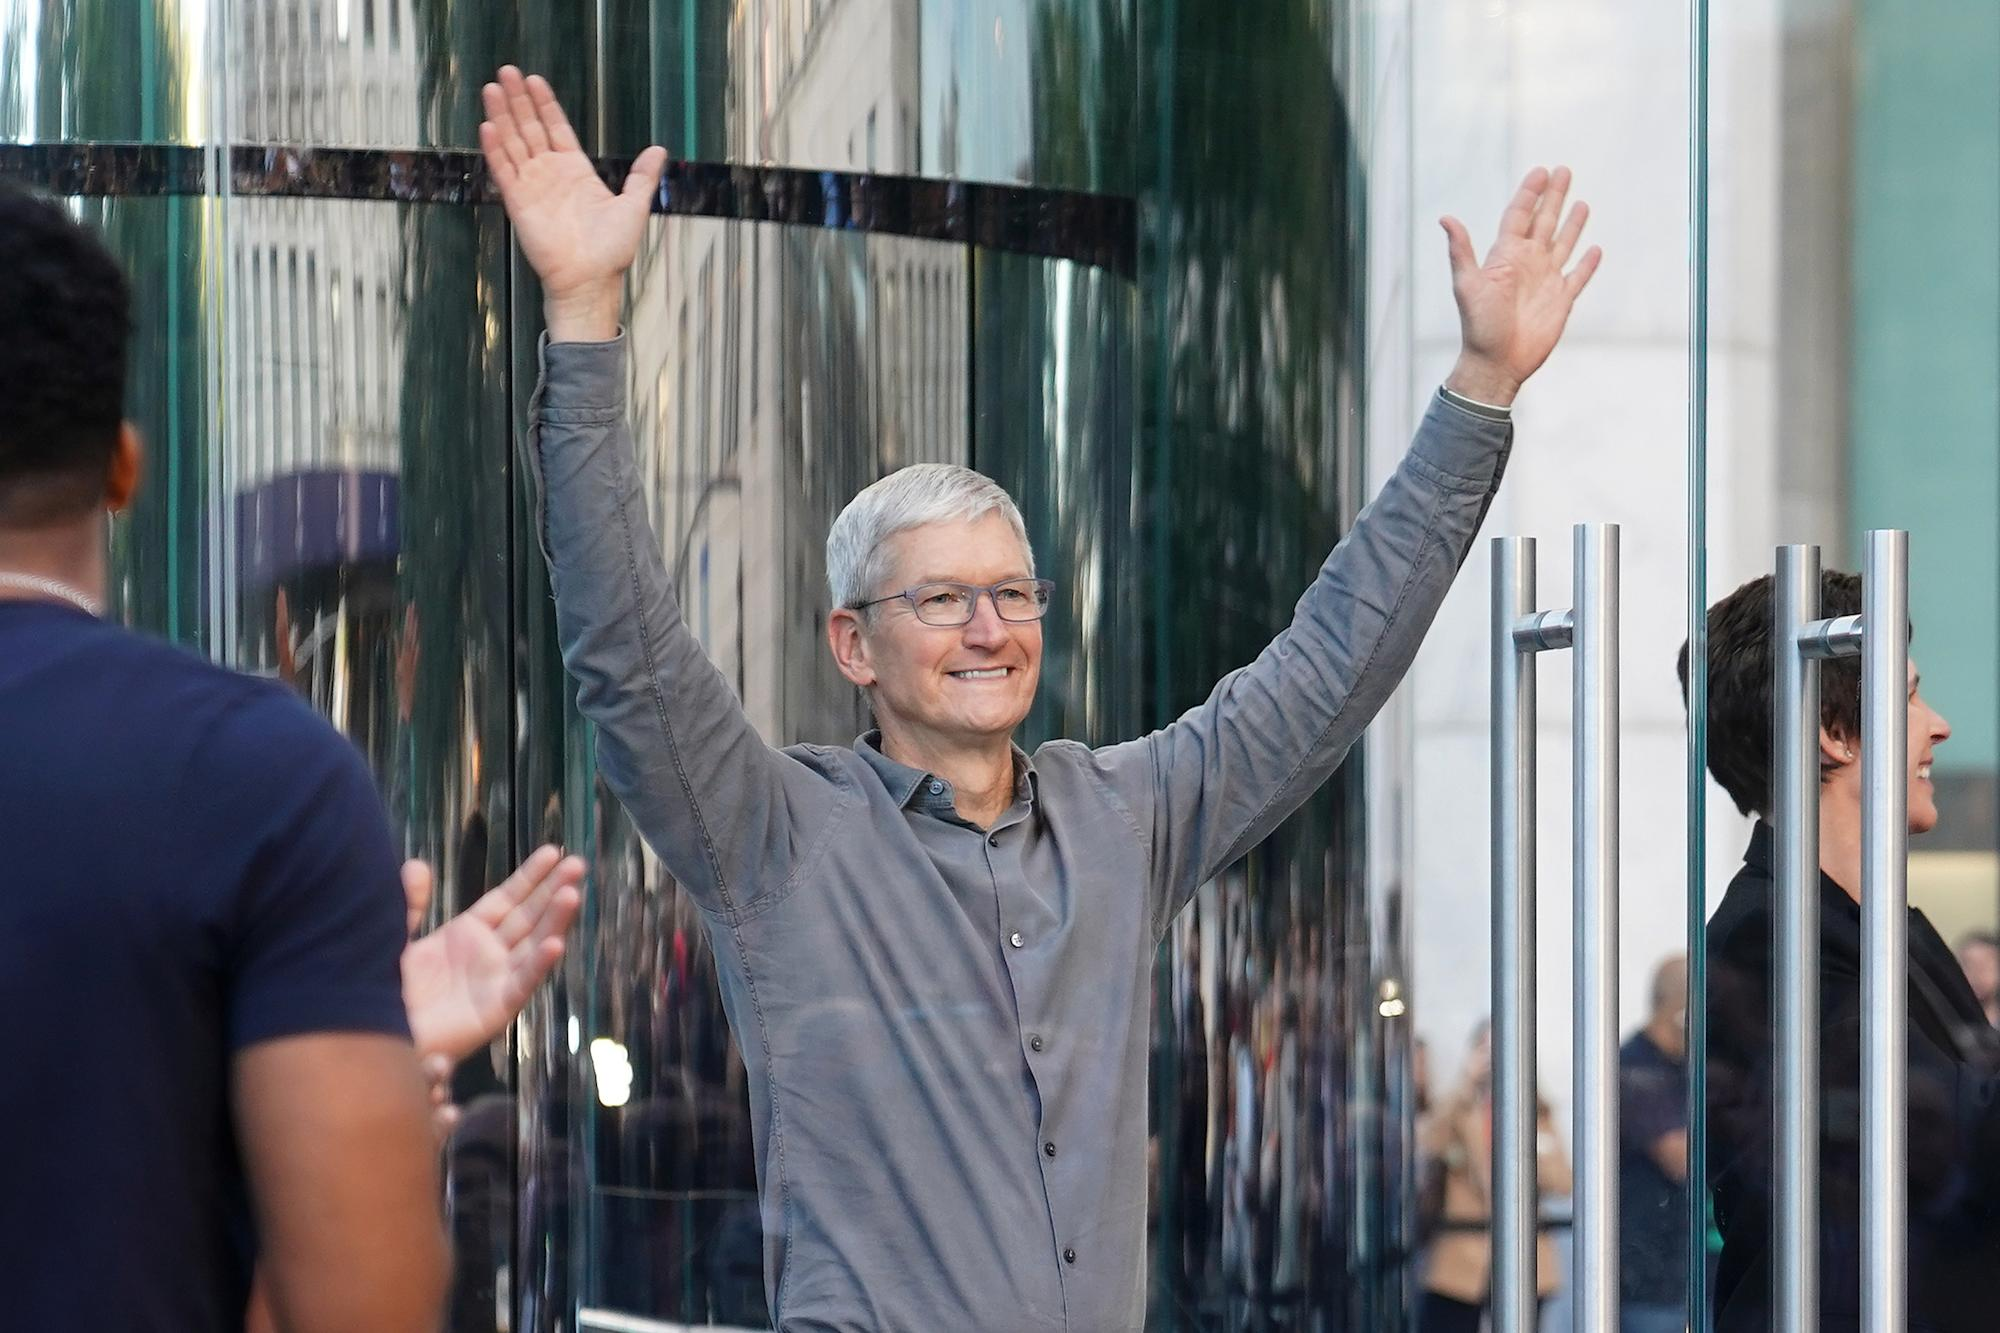 Apple expected to report record Q1 earnings after the bell